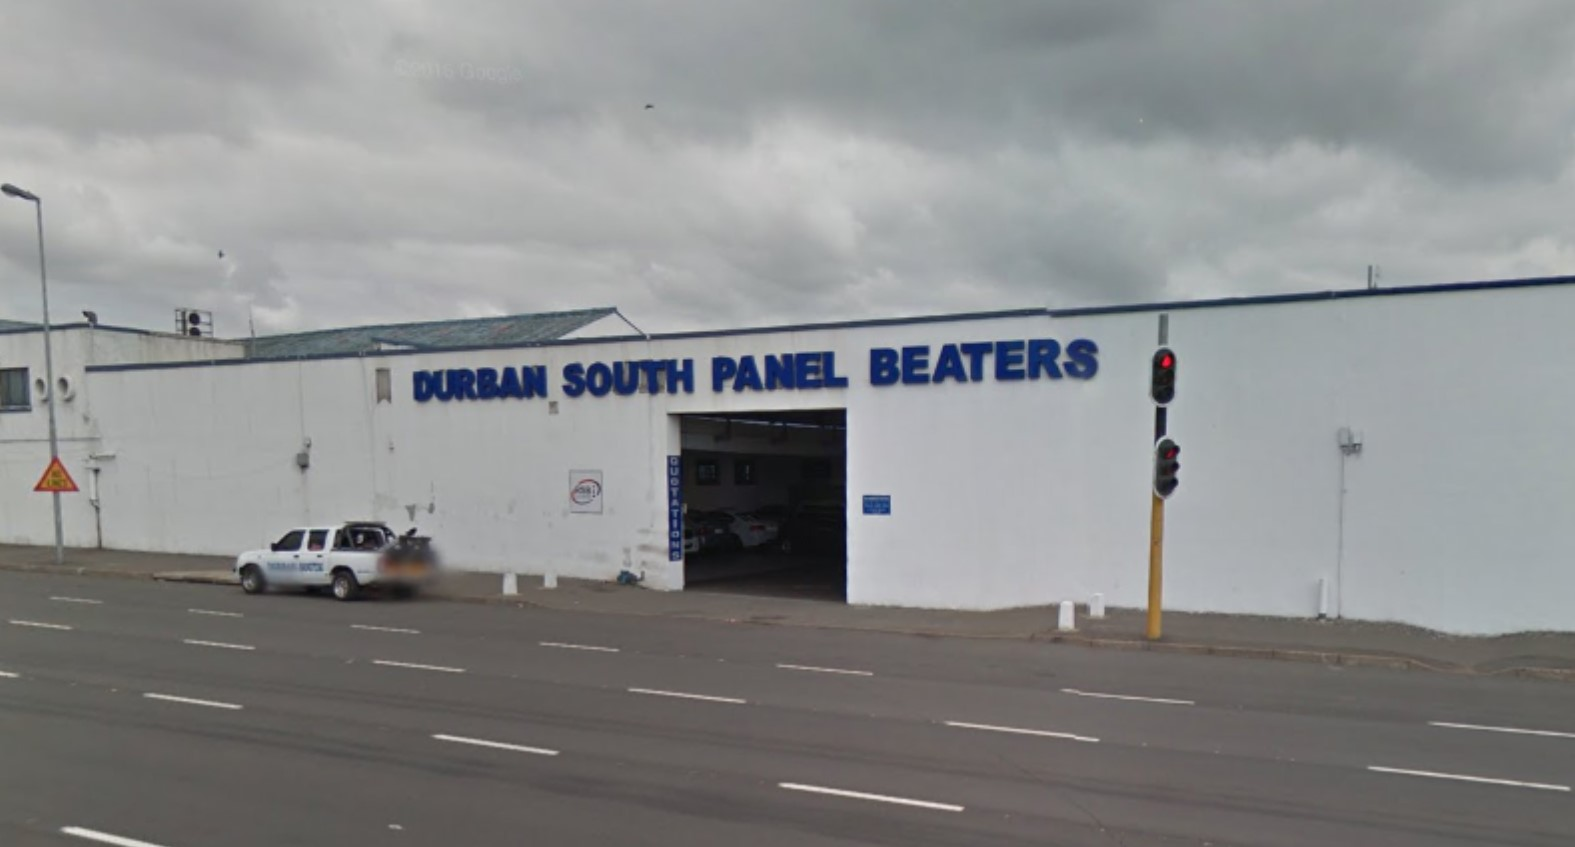 Durban South Panel Beaters